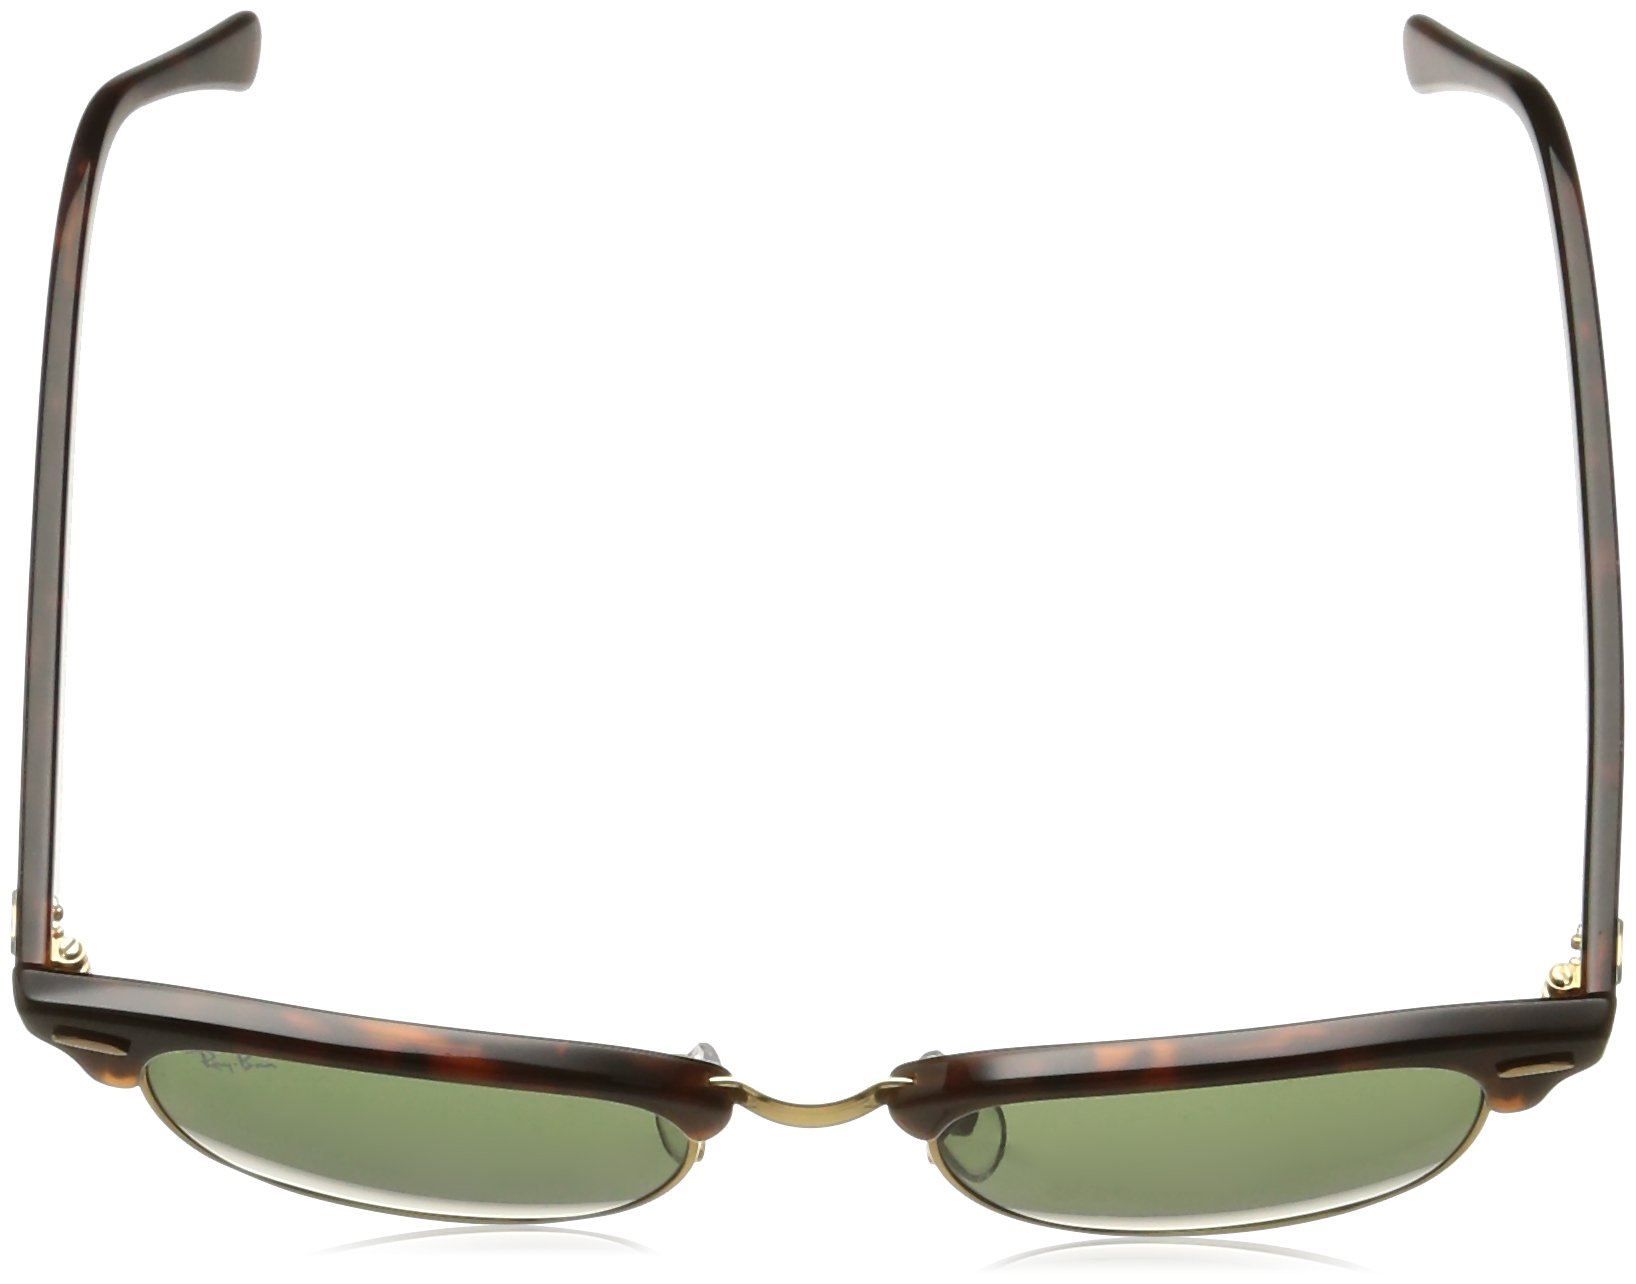 Ray-Ban CLUBMASTER - MOCK TORTOISE/ ARISTA Frame CRYSTAL GREEN Lenses 49mm Non-Polarized by Ray-Ban (Image #4)